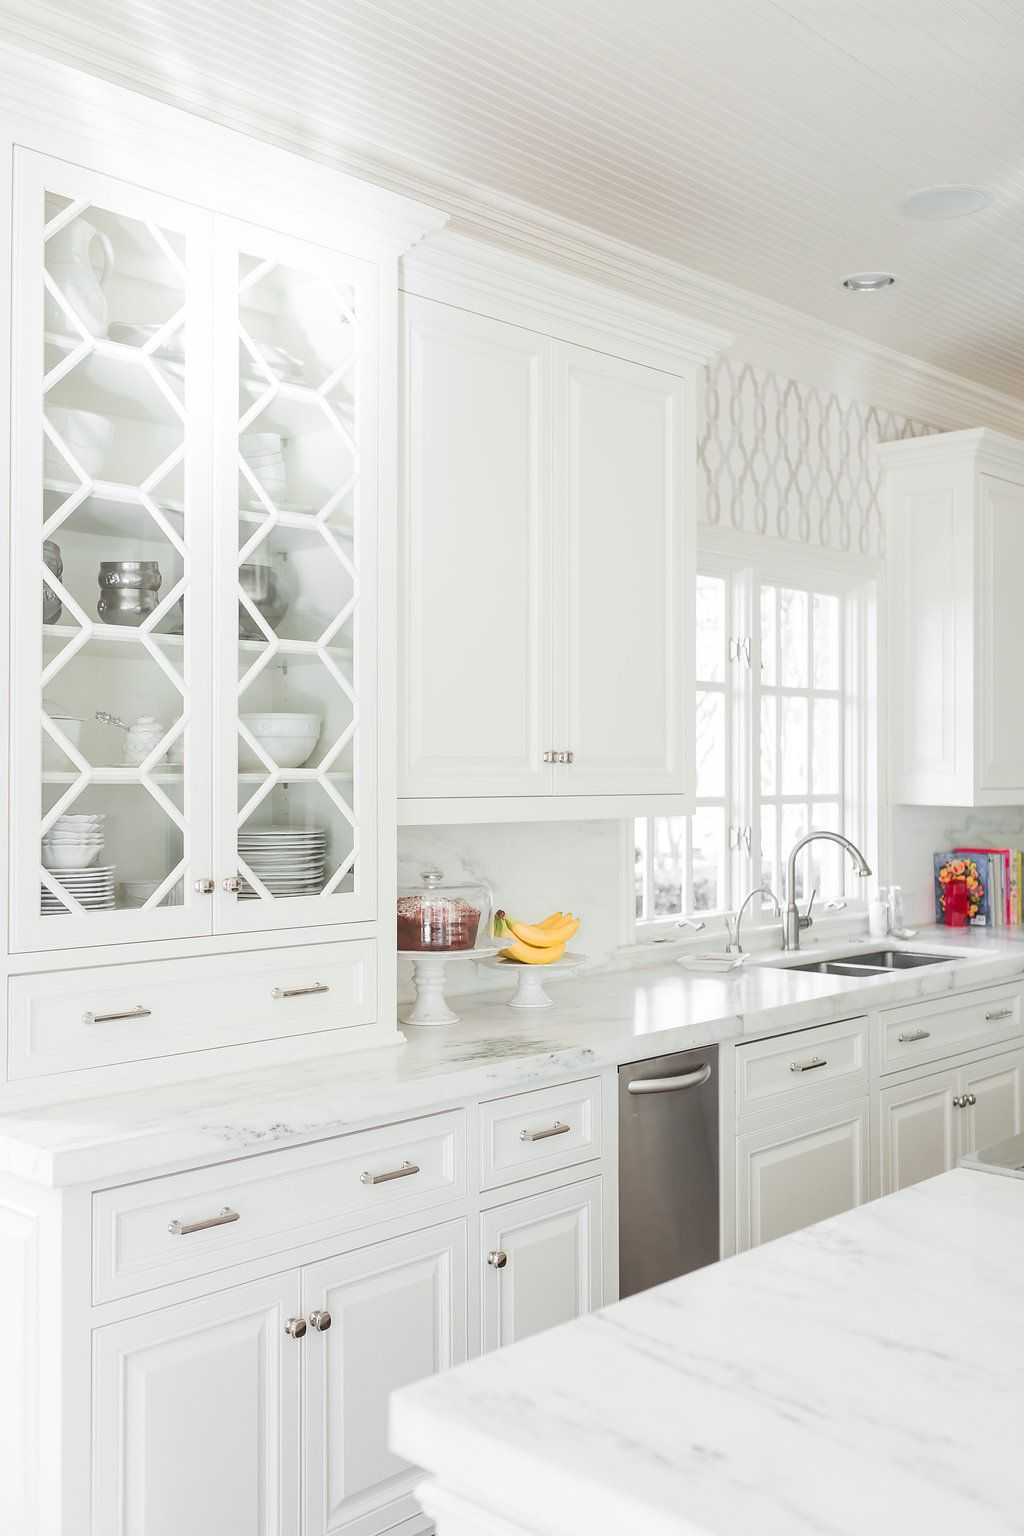 My Kitchen Reveal White Kitchen with Pops of Pink and